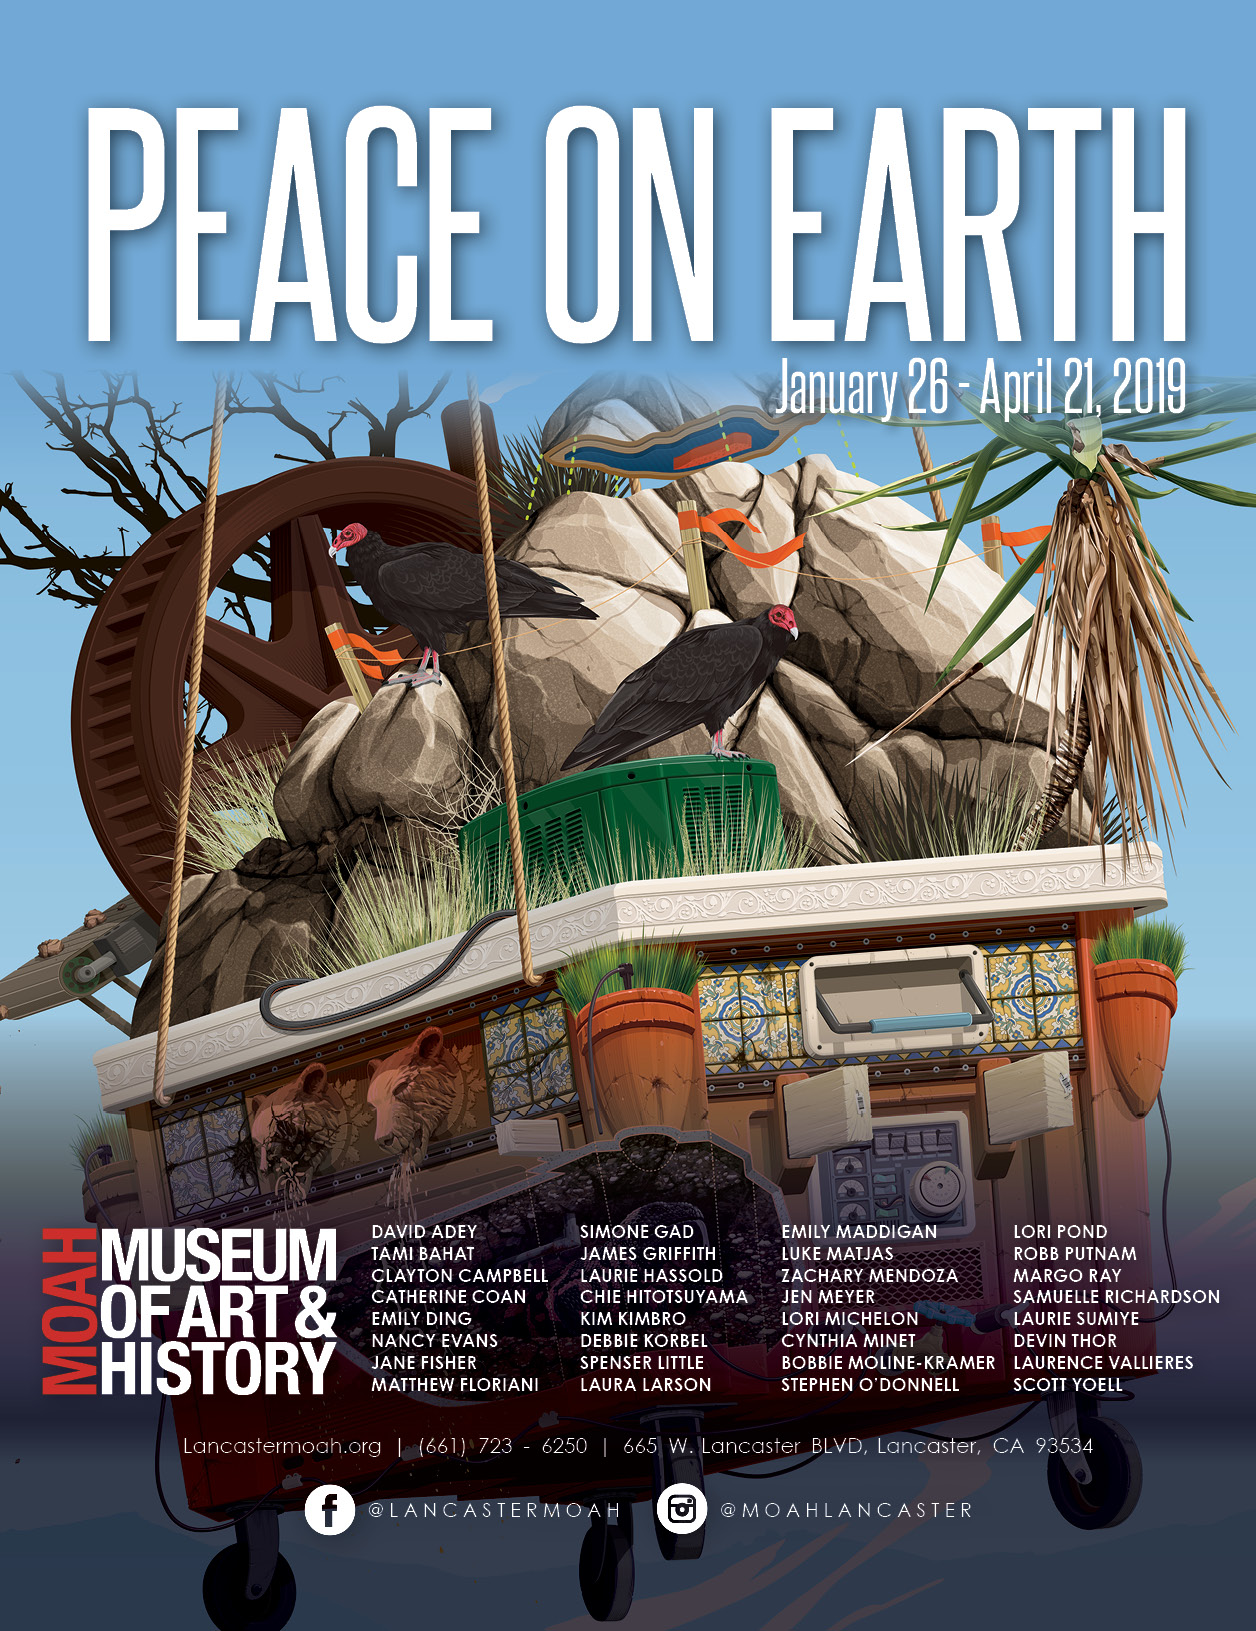 PeaceonEarth_Flyer_MOAH, Lancaster,CA FINAL.jpg